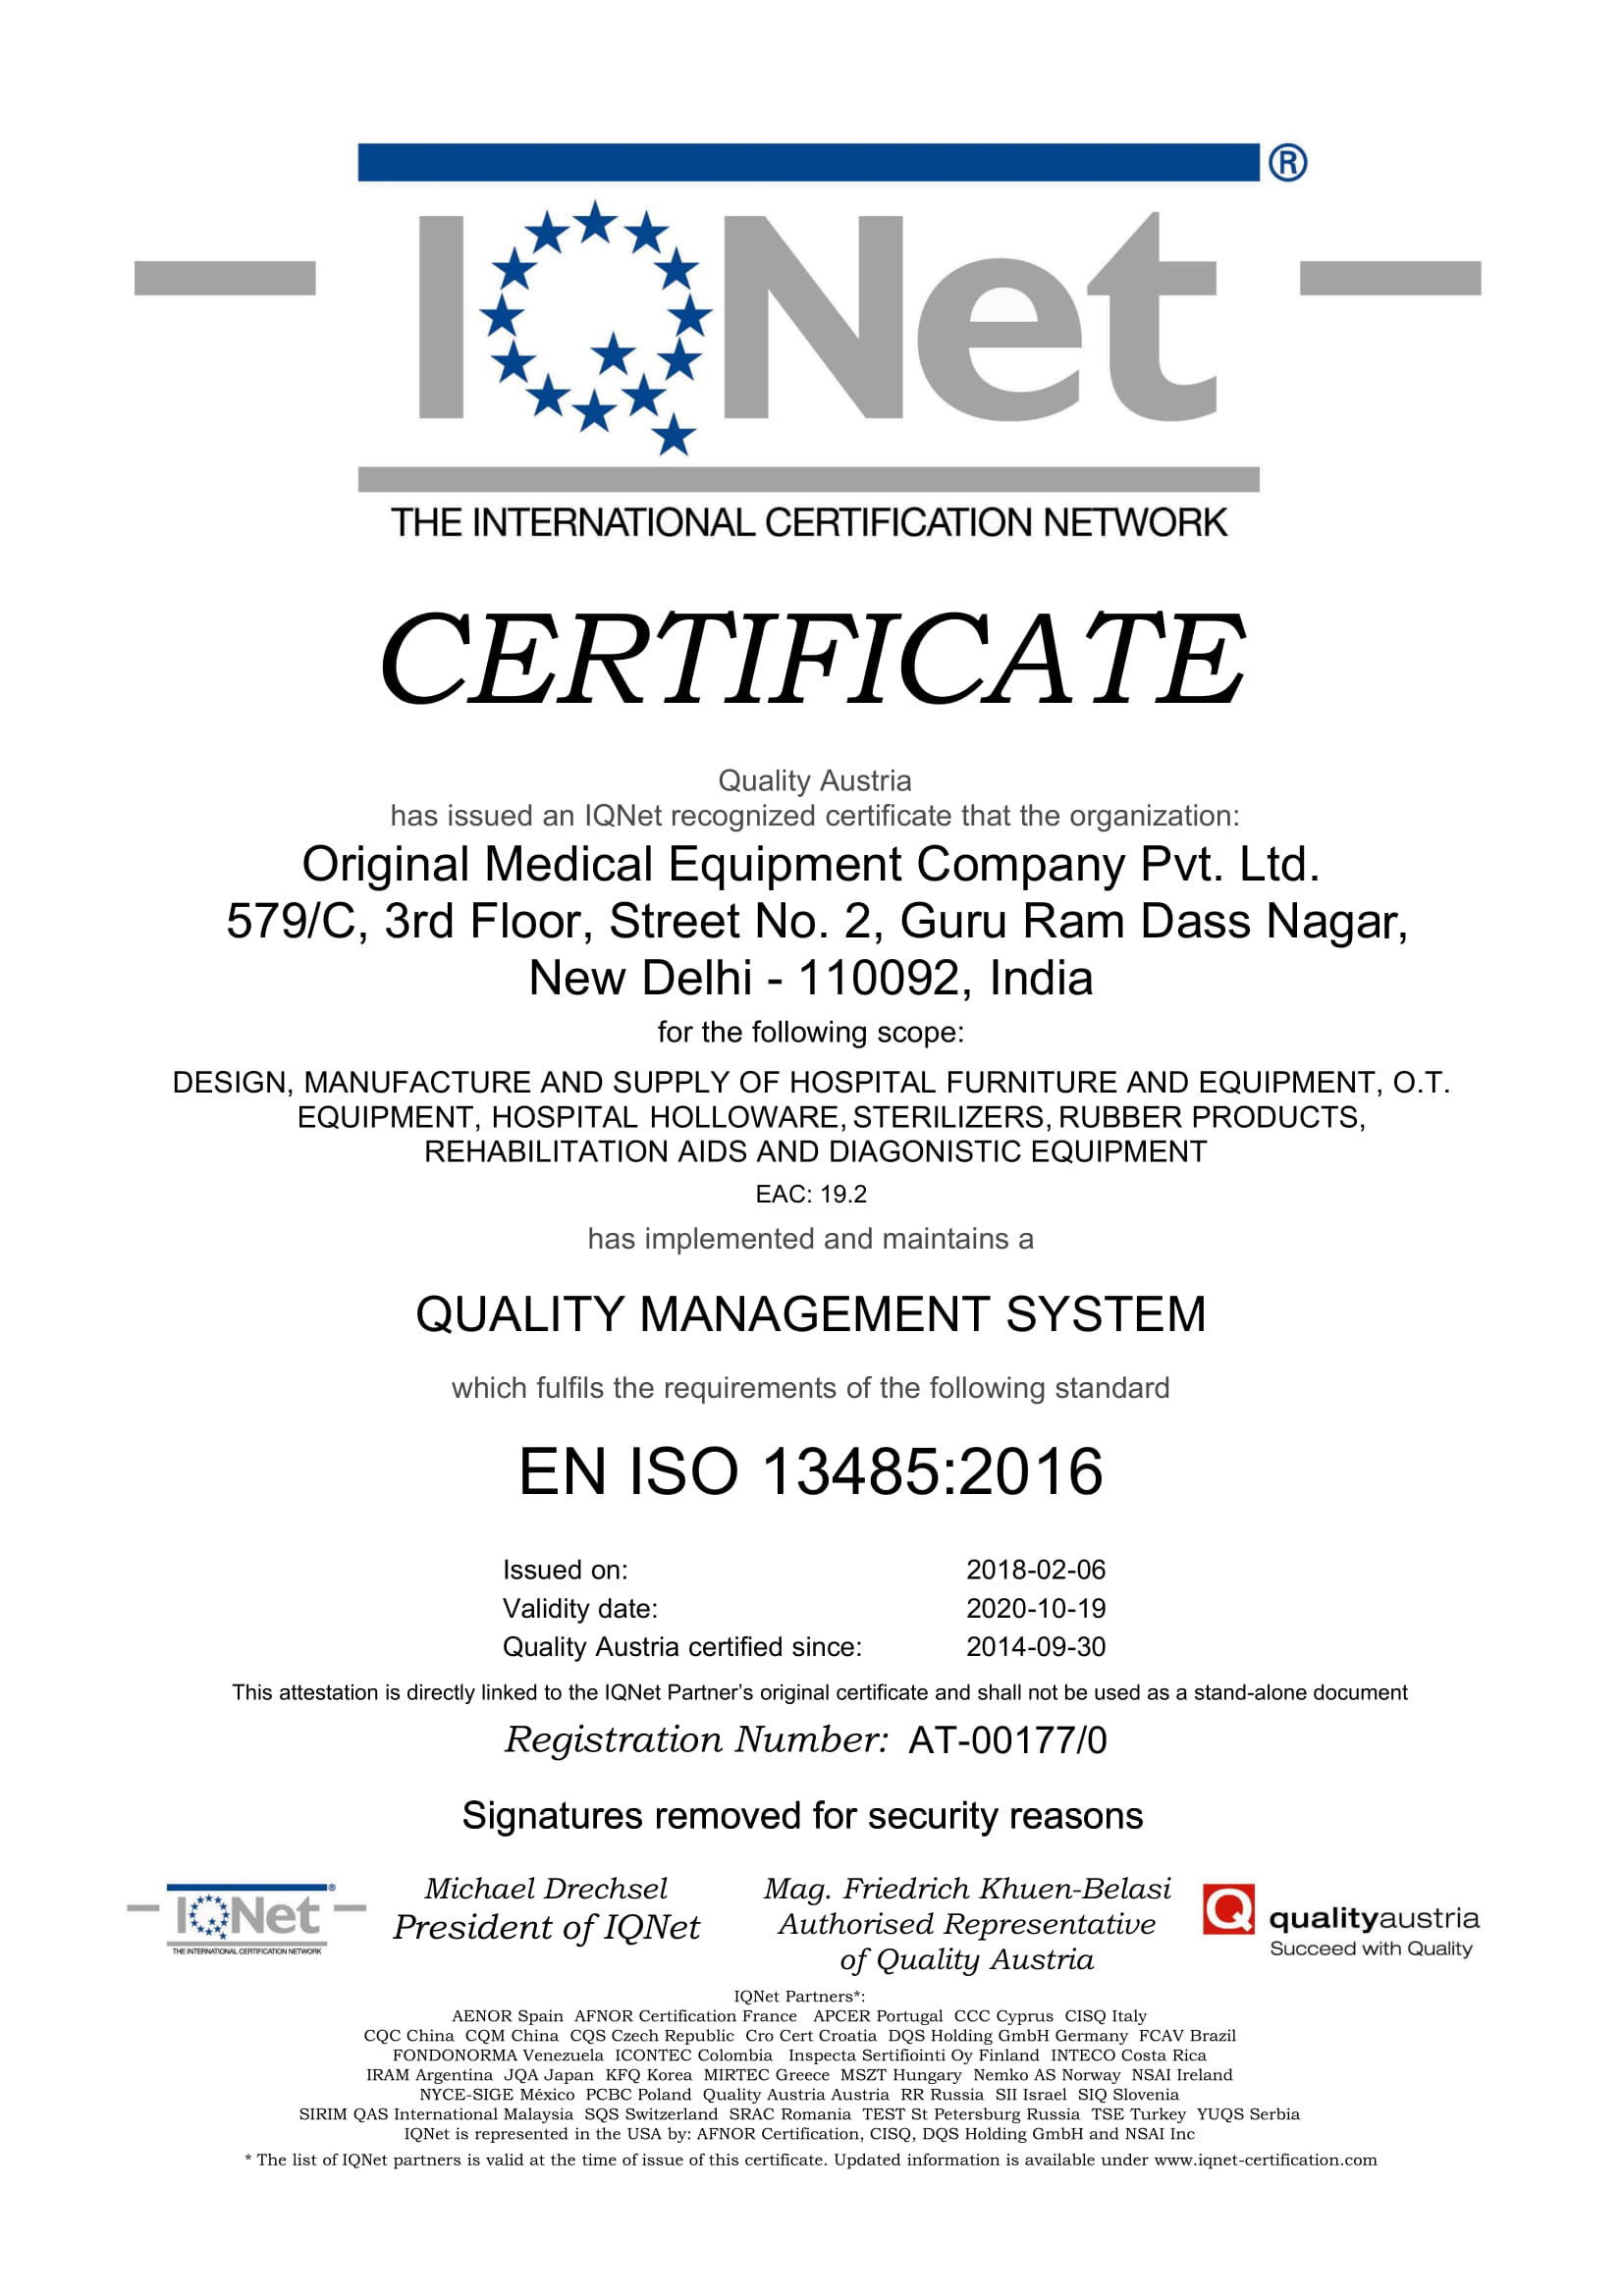 ISO-Certified & A CE Marked Hospital Equipment Manufacturing